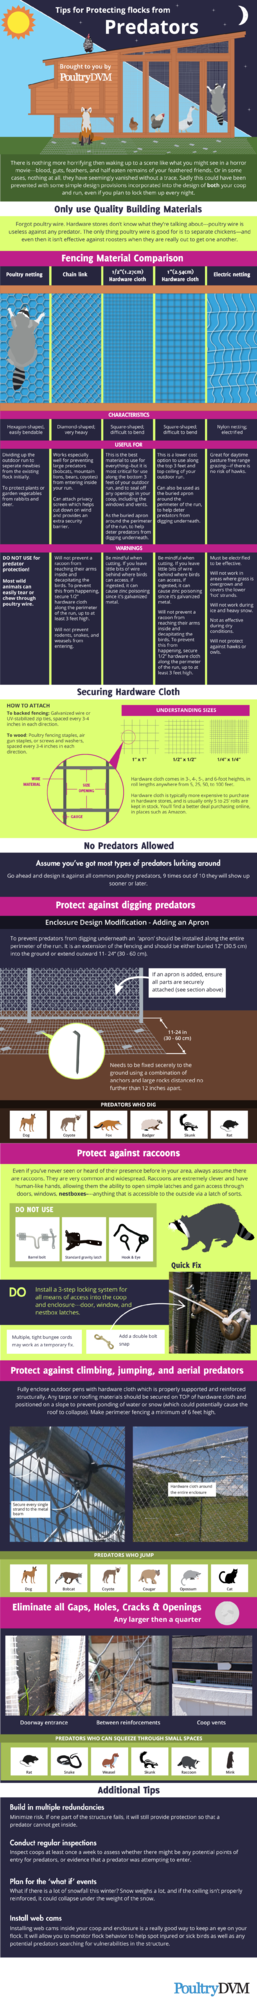 poultrydvm-infographic-protecting-flocks-from-predators.png